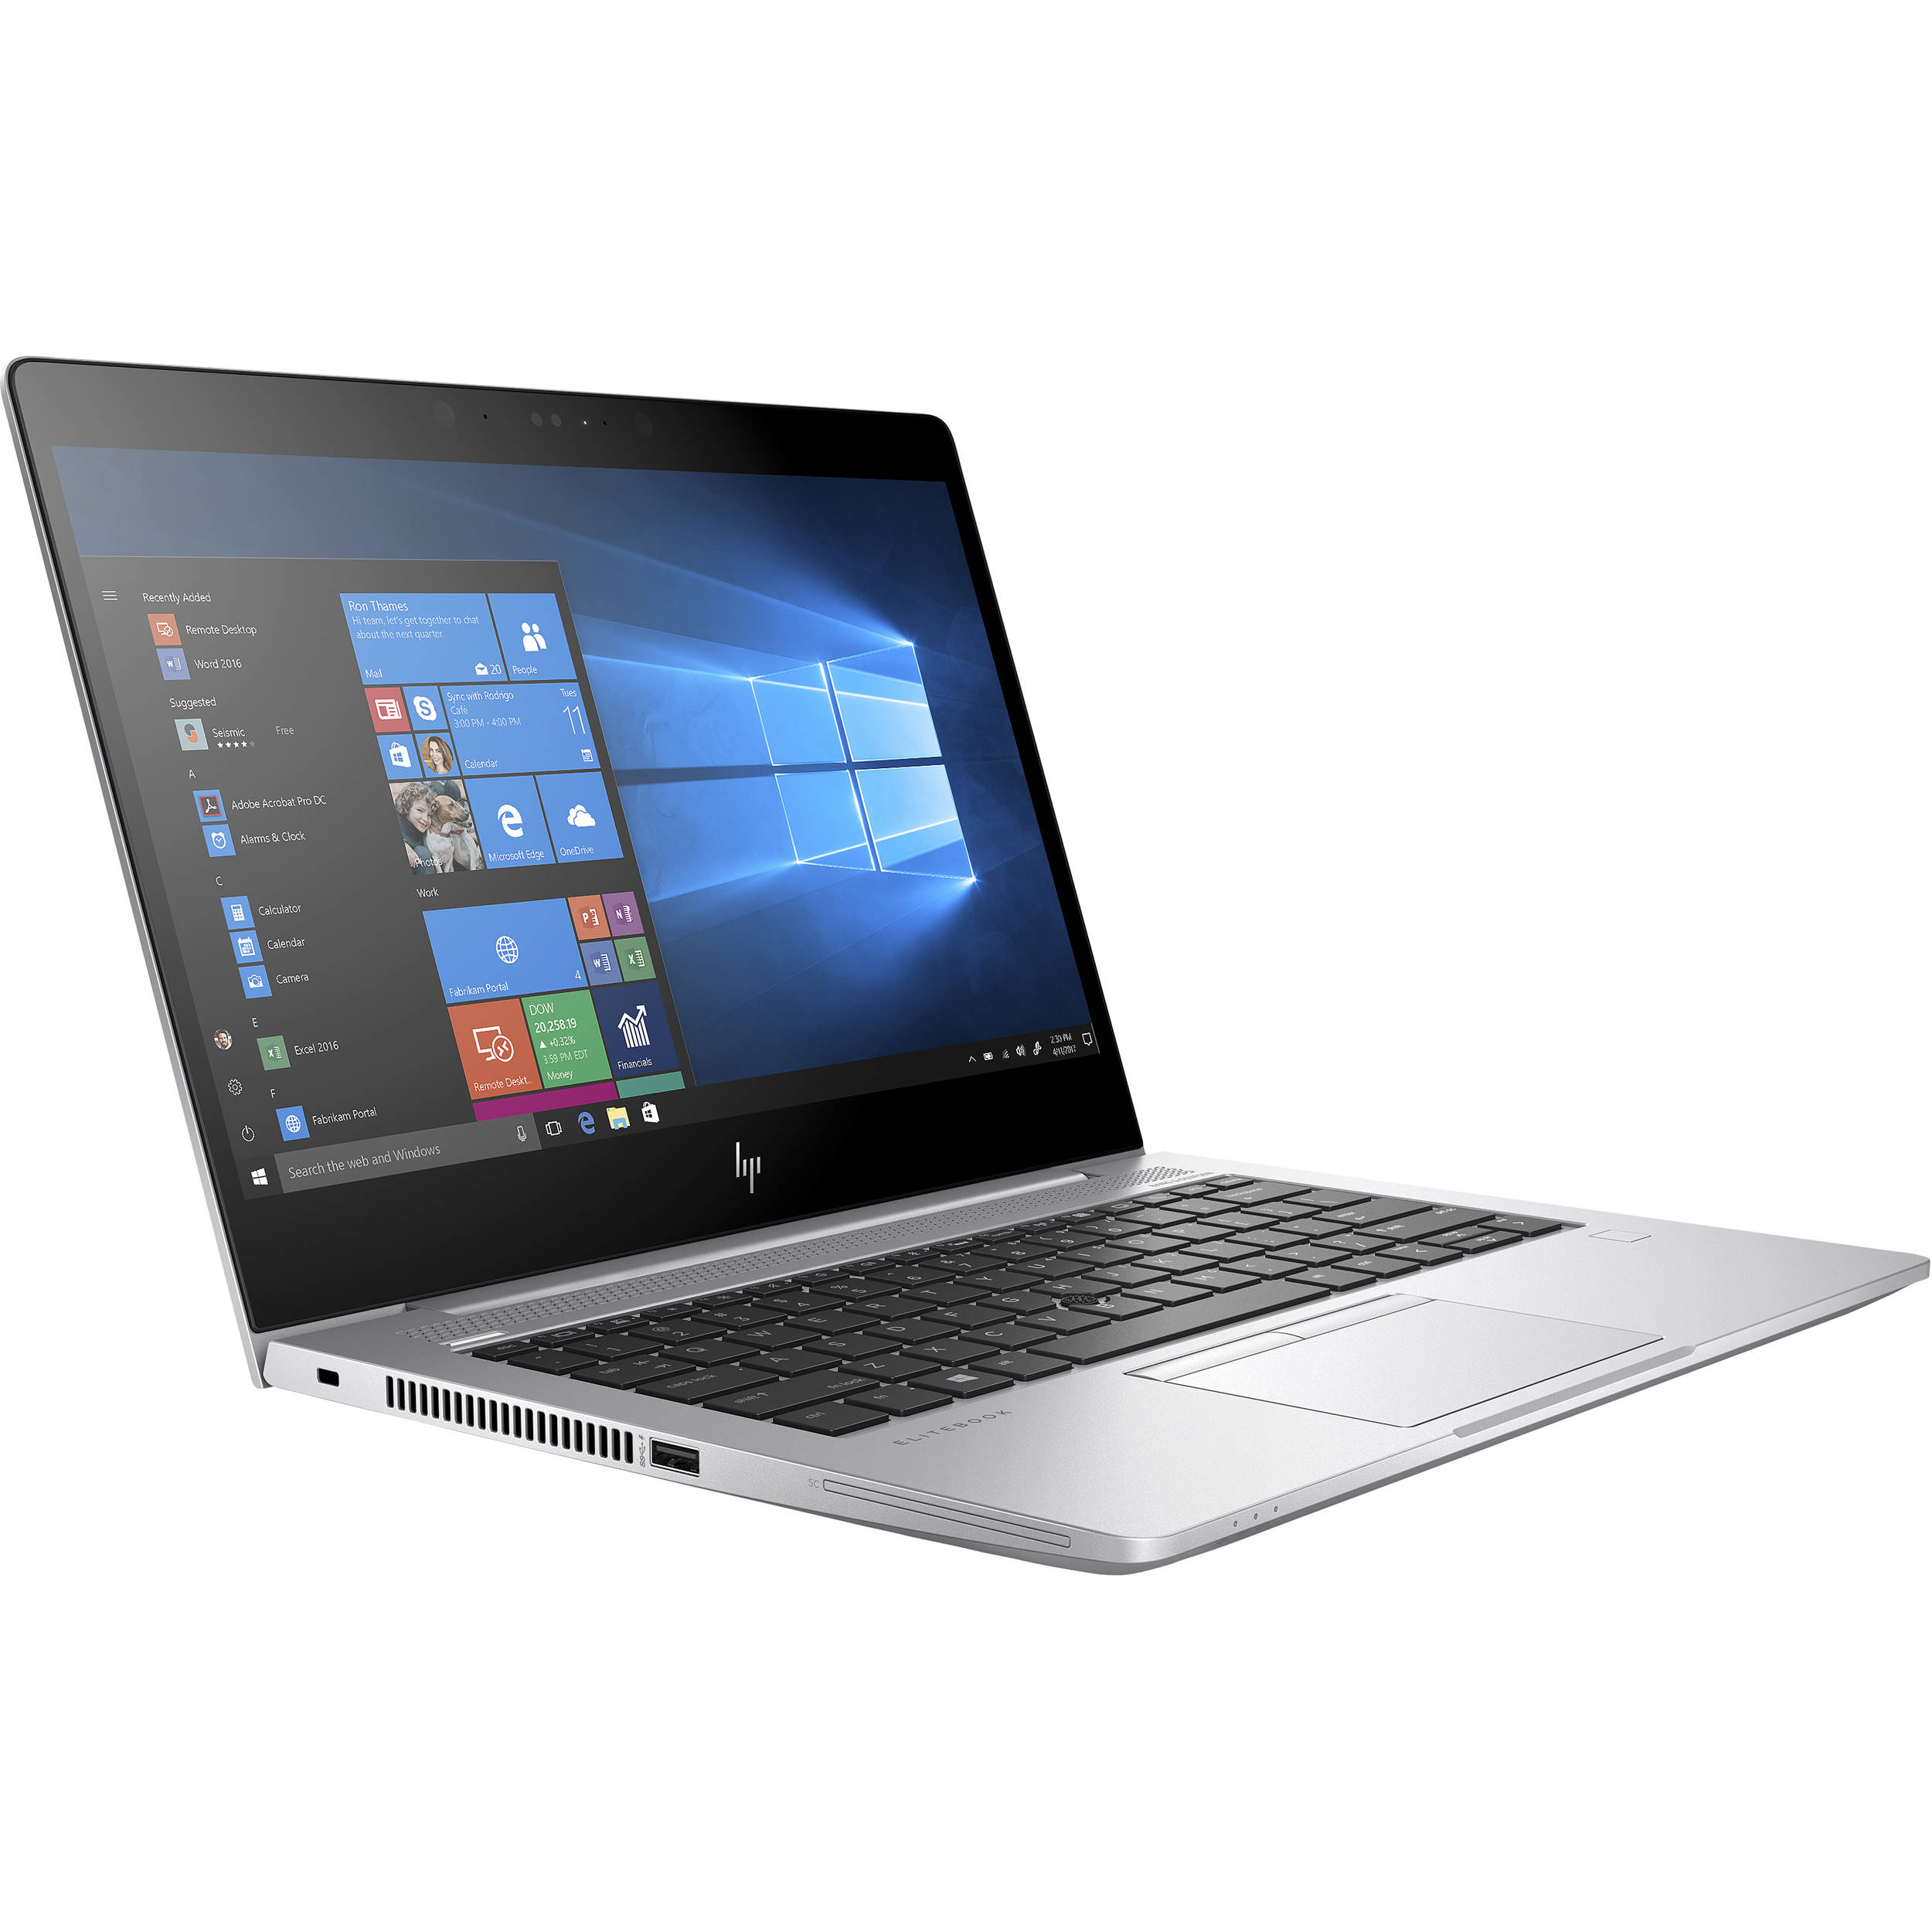 INTEL 830M GRAPHICS CONTROLLER DRIVERS DOWNLOAD (2019)